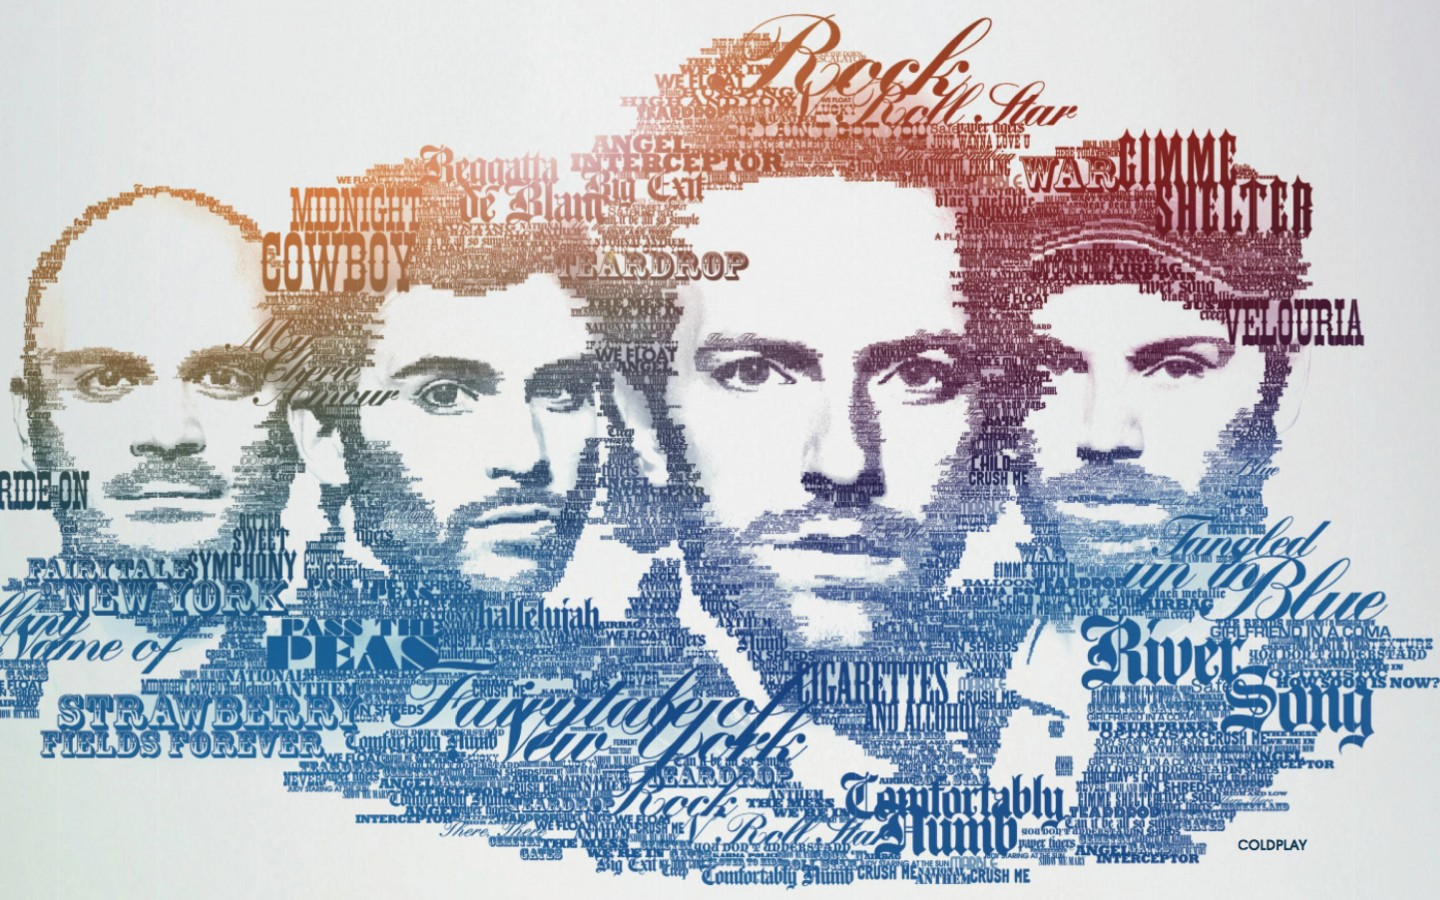 Coldplay Typographic Portrait Wallpaper for Desktop 1440x900